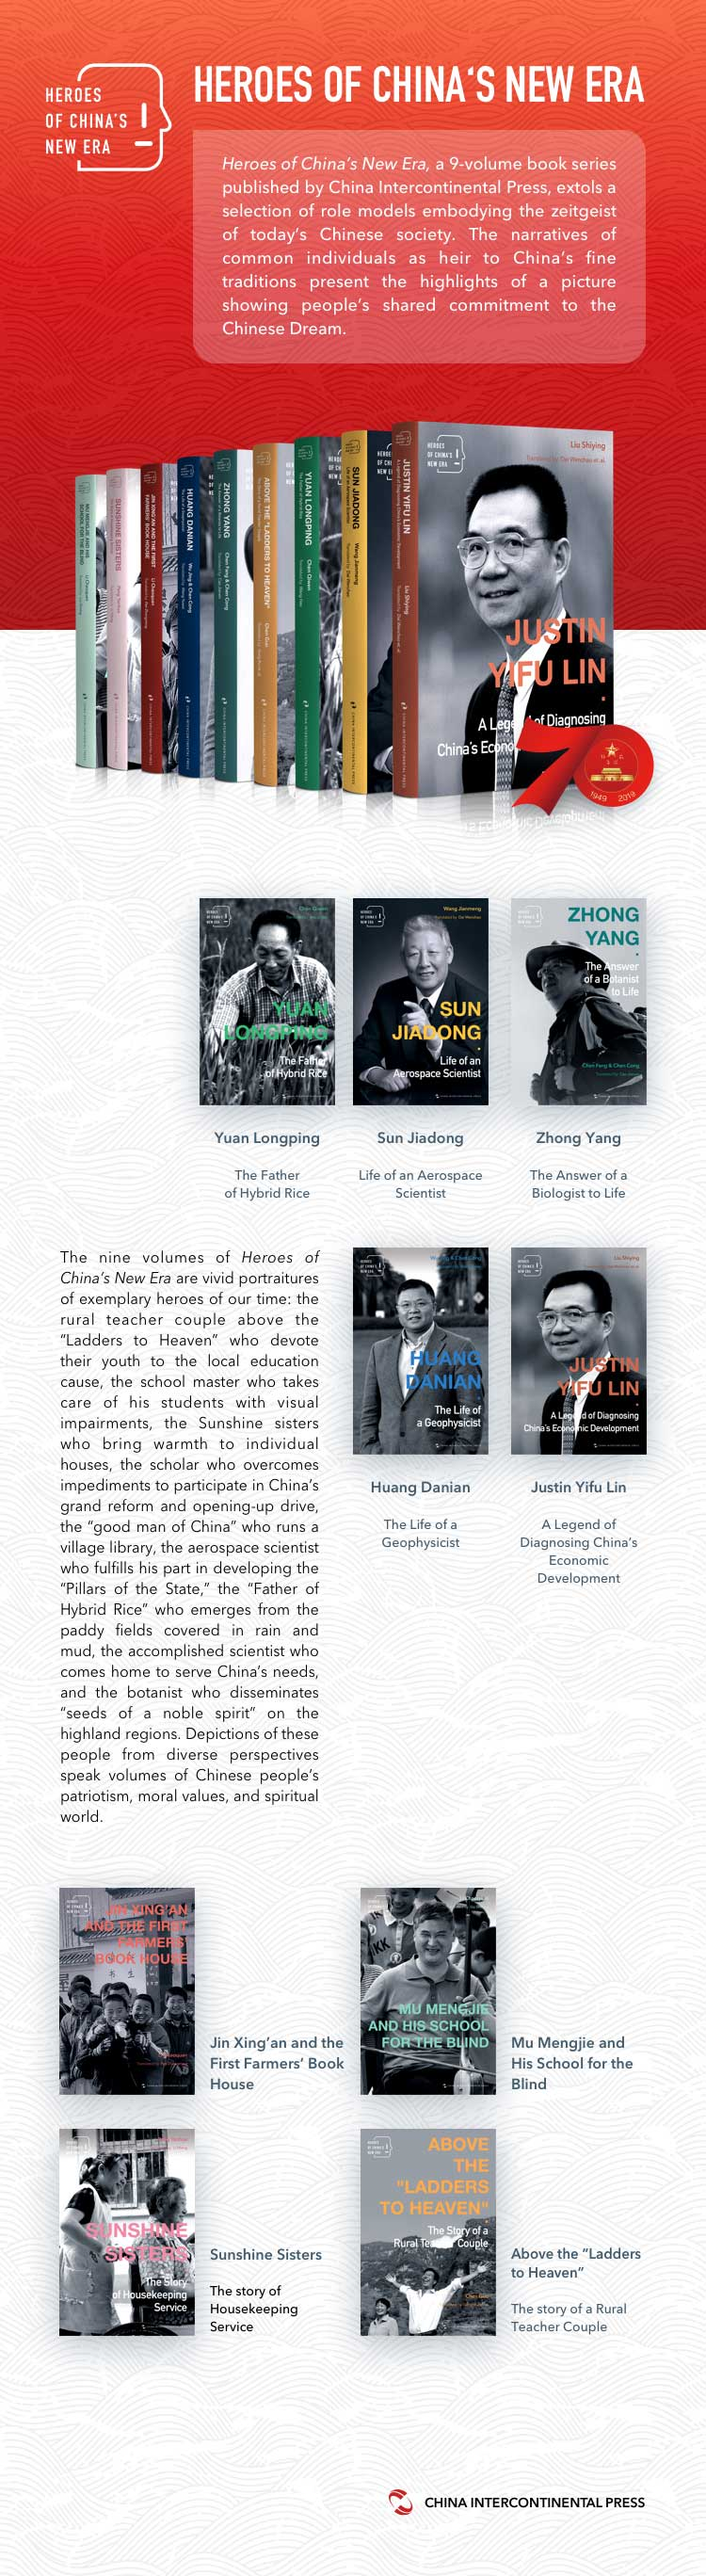 Sample pages of Heroes of China's New Era:Justin Yifu Lin A Legend of Diagnosing China's Economic Development (ISBN:9787508536095)